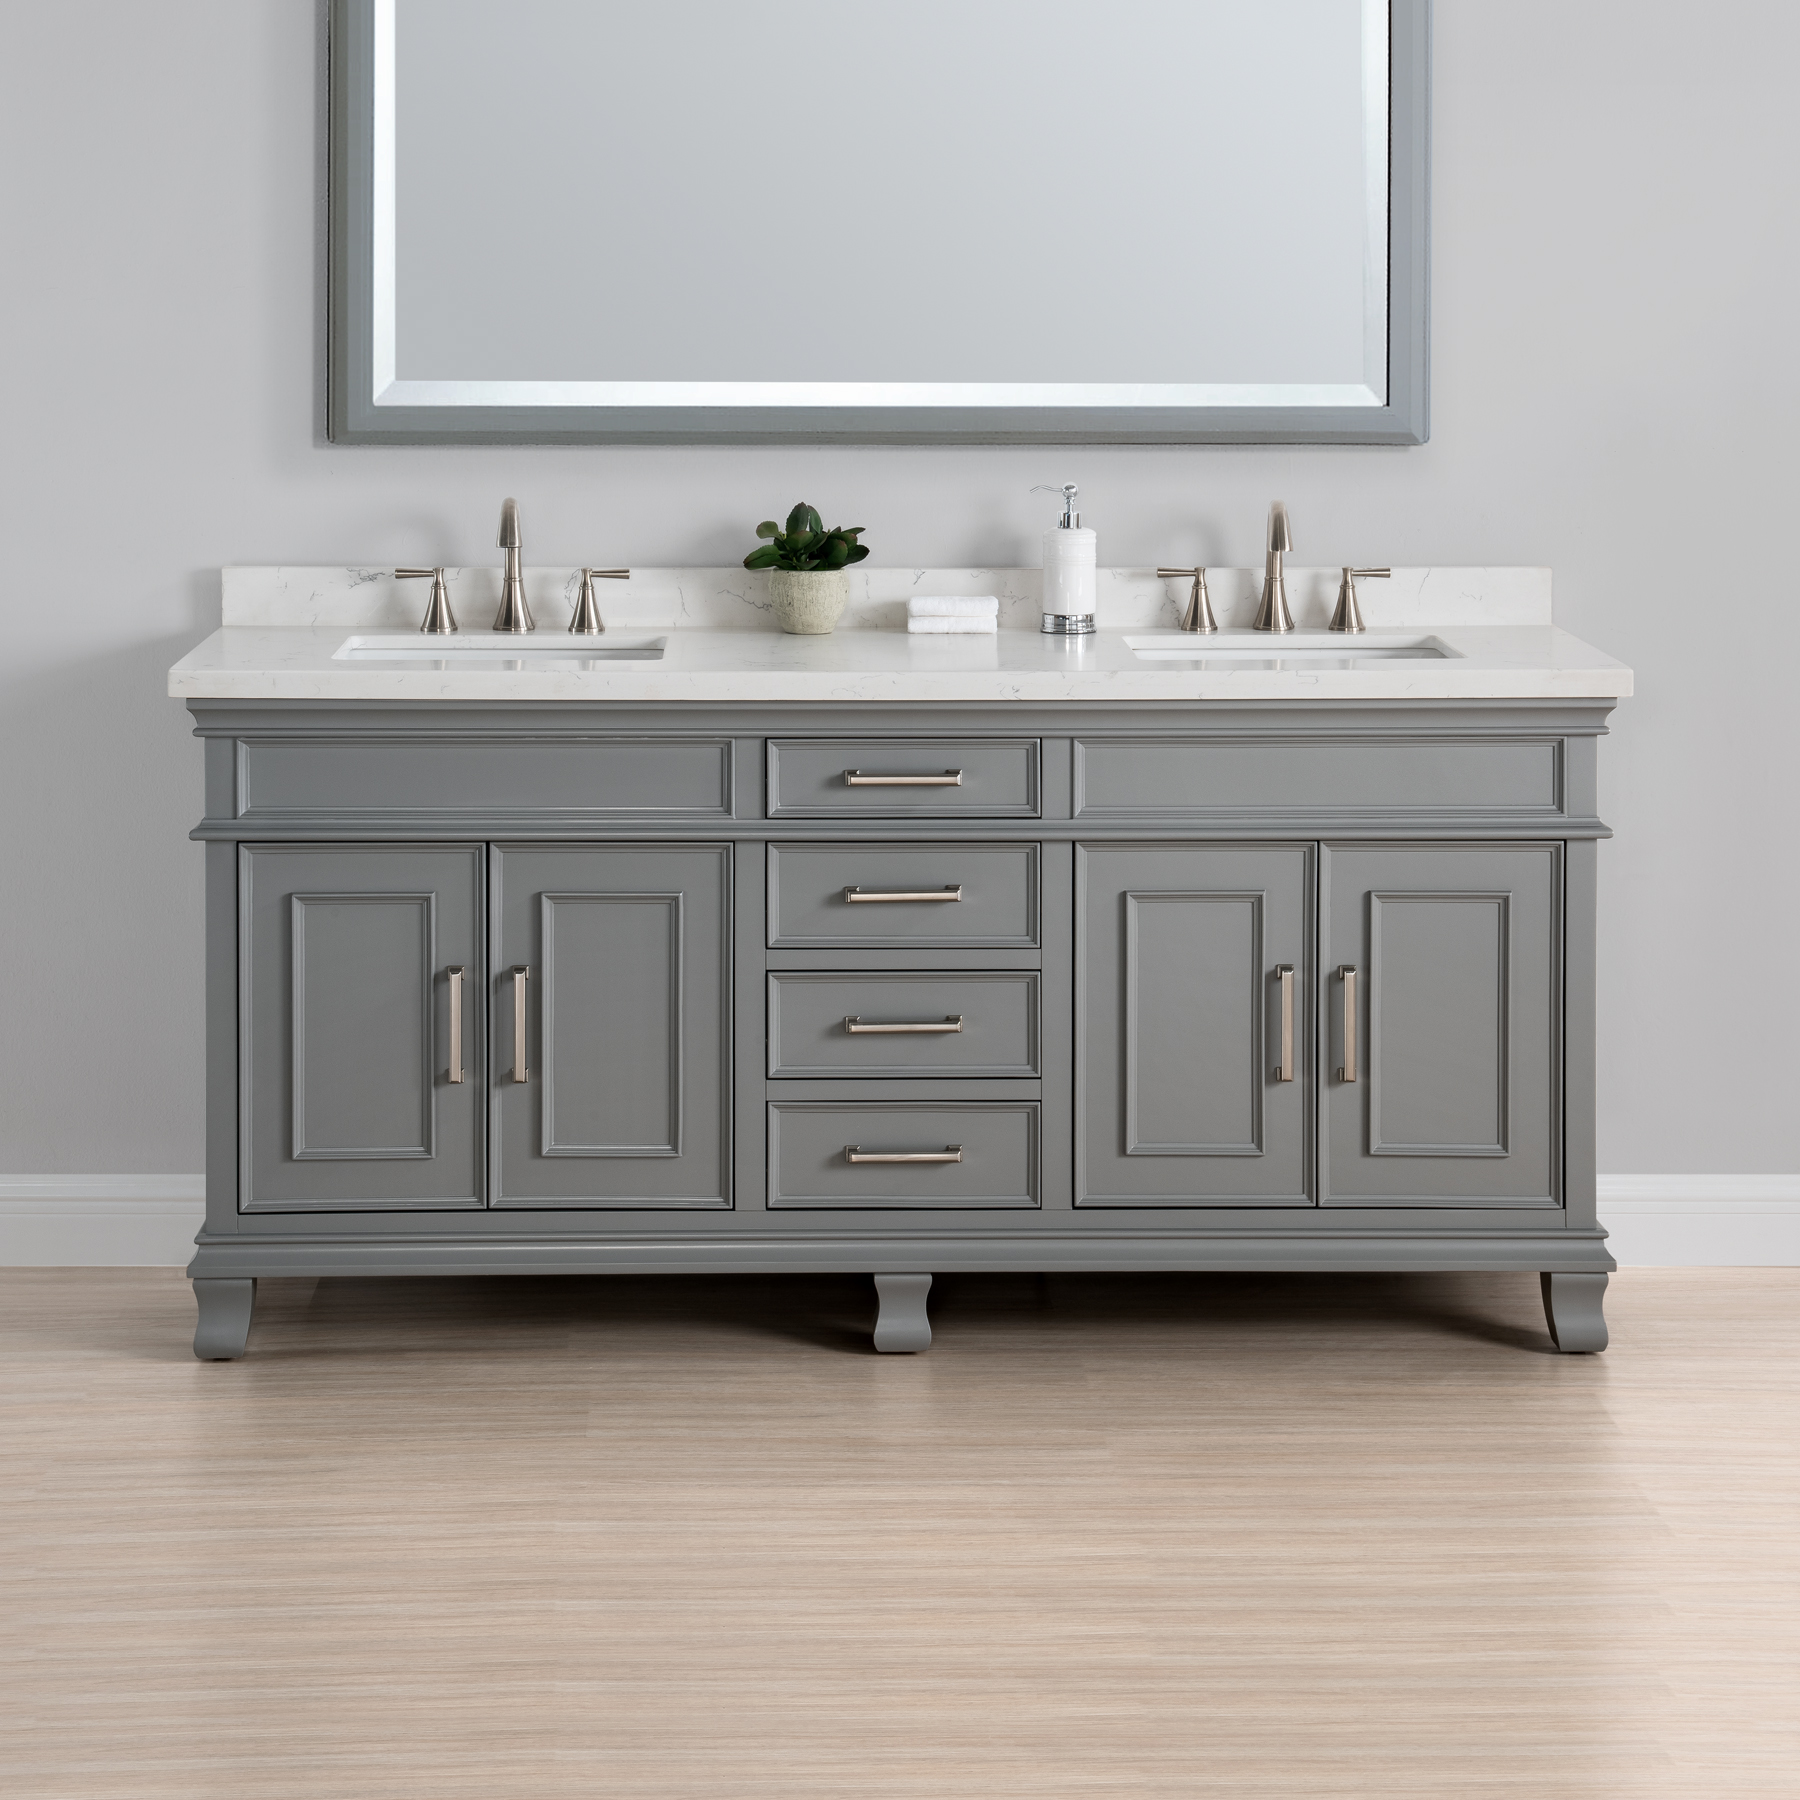 Double Sink Bathroom Vanity Ideas 2018  Home Comforts